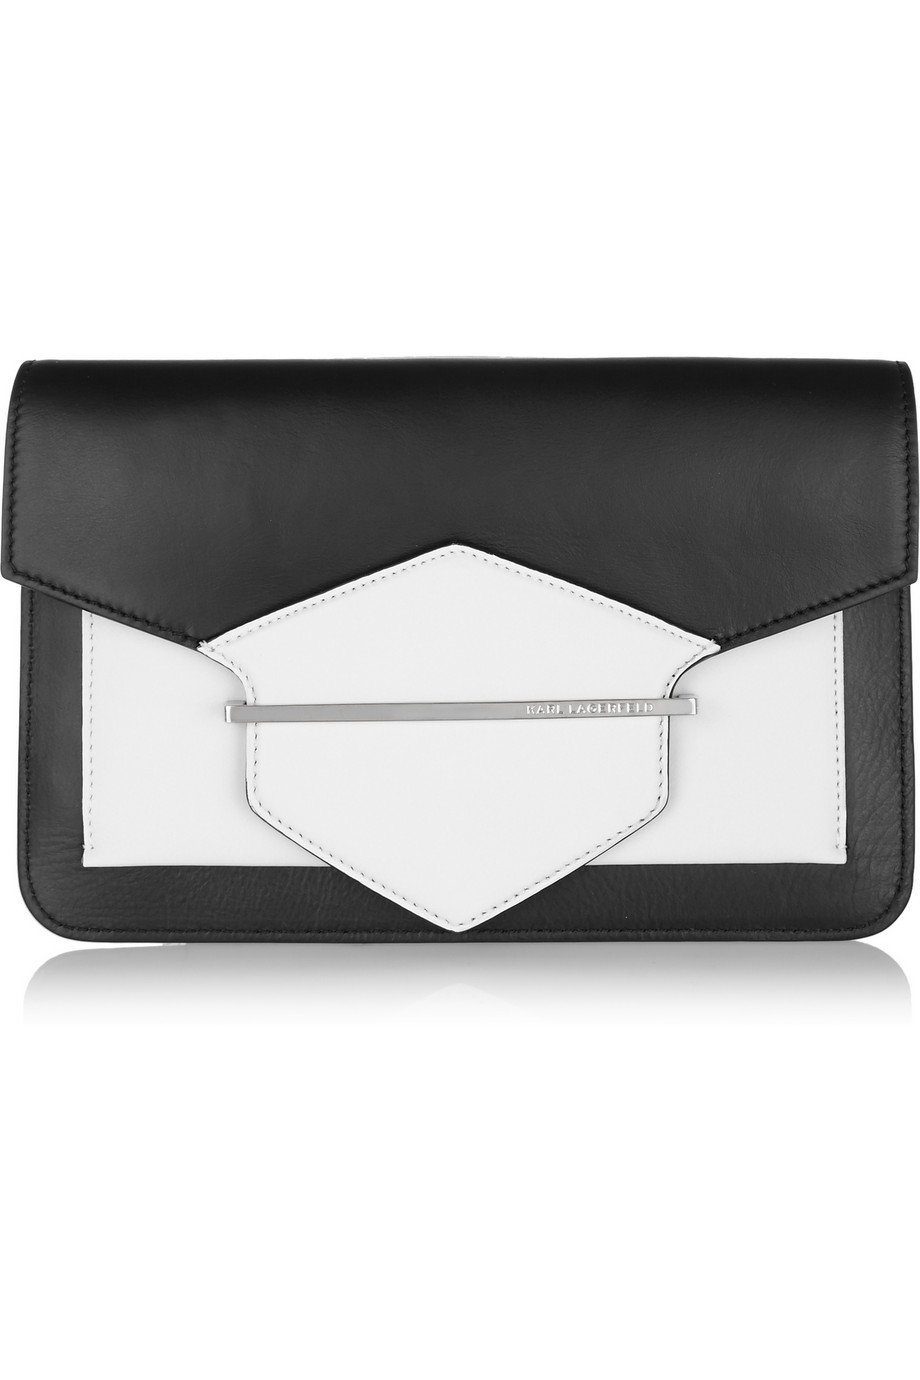 Karl Lagerfeld Khic Leather Clutch $425